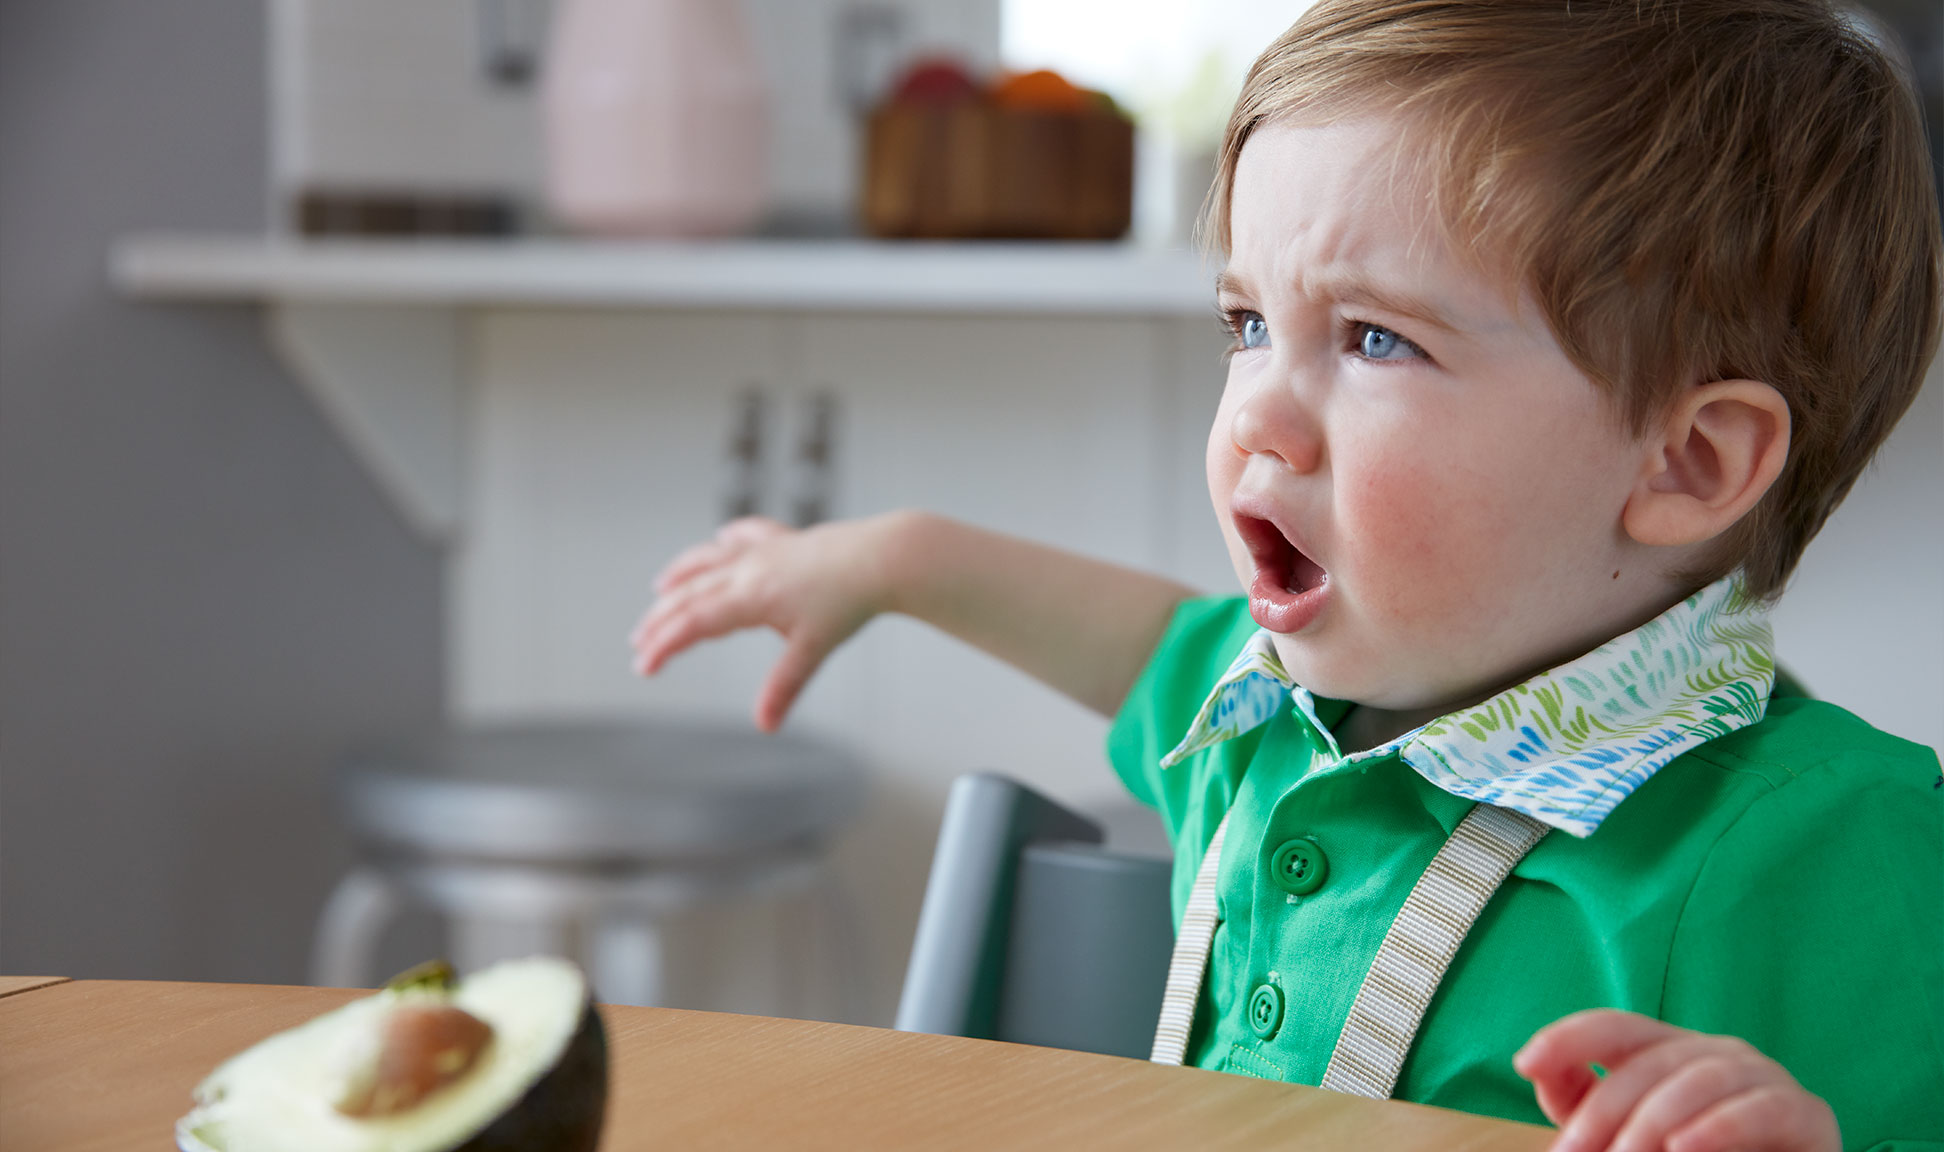 Child appears unhappy with the menu.